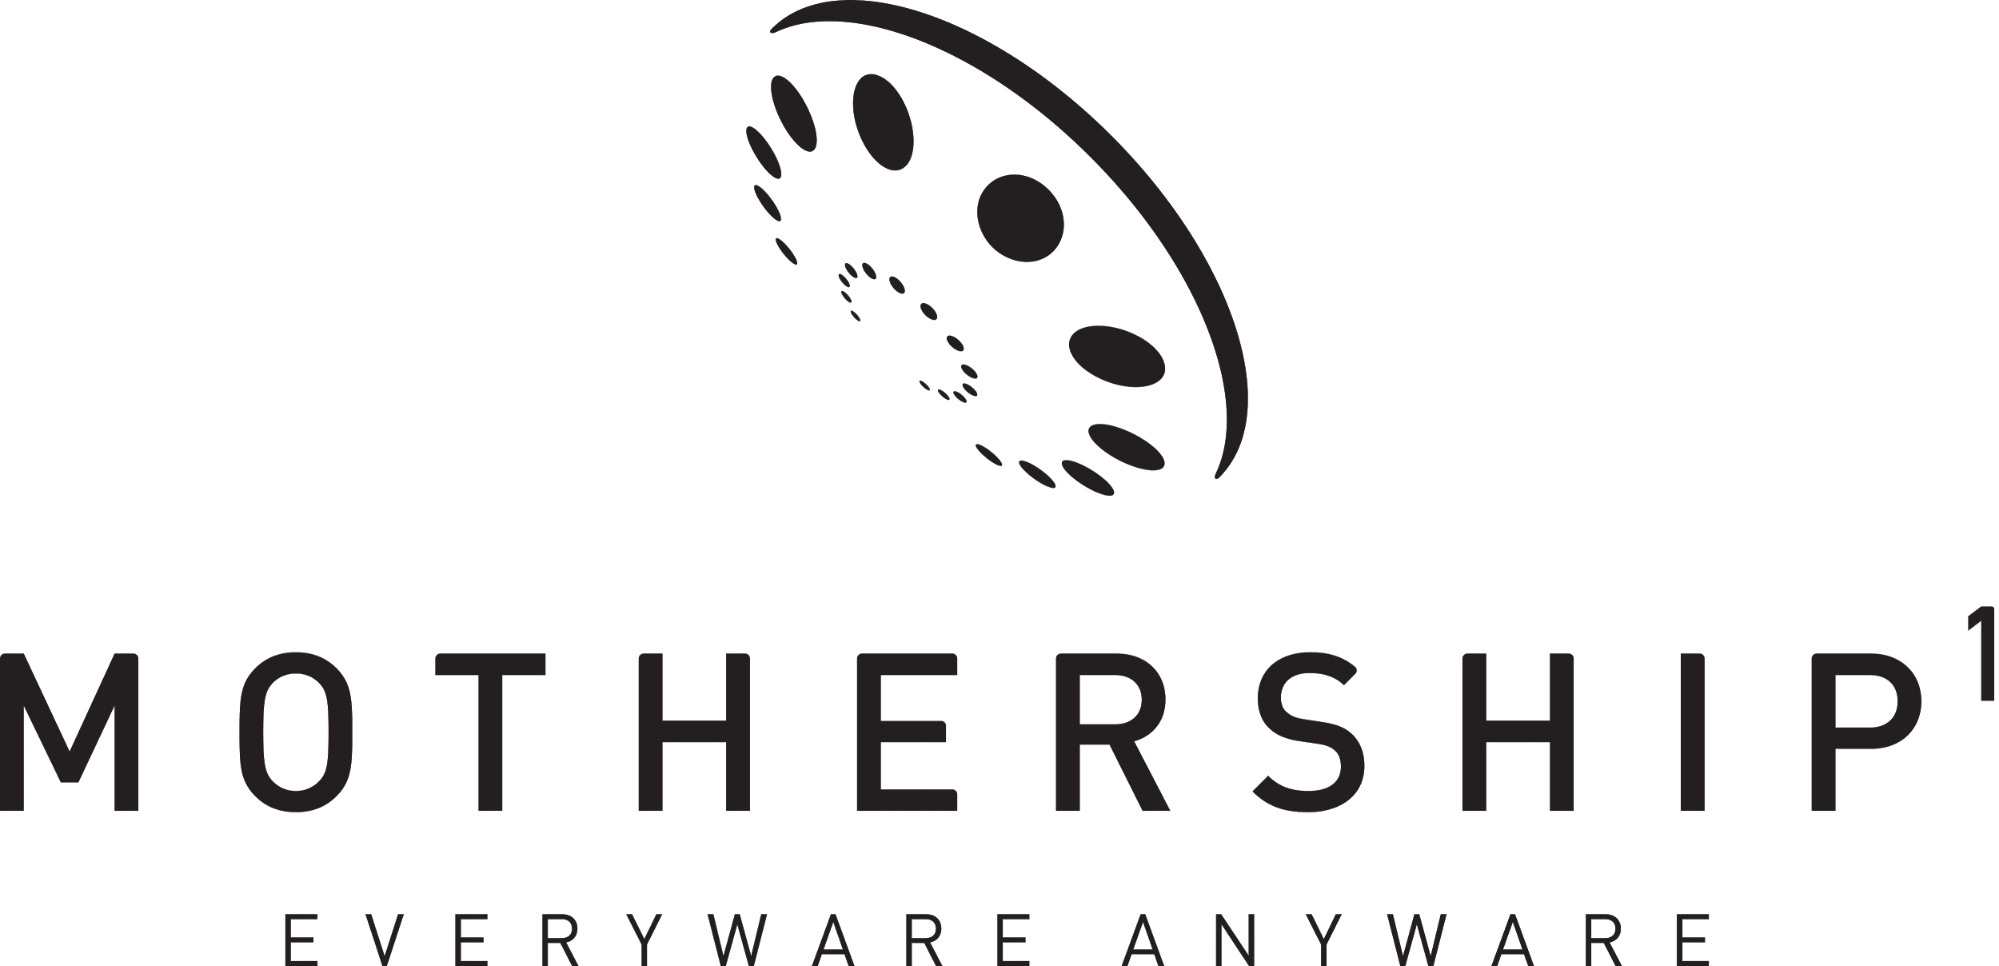 mothership1 logo